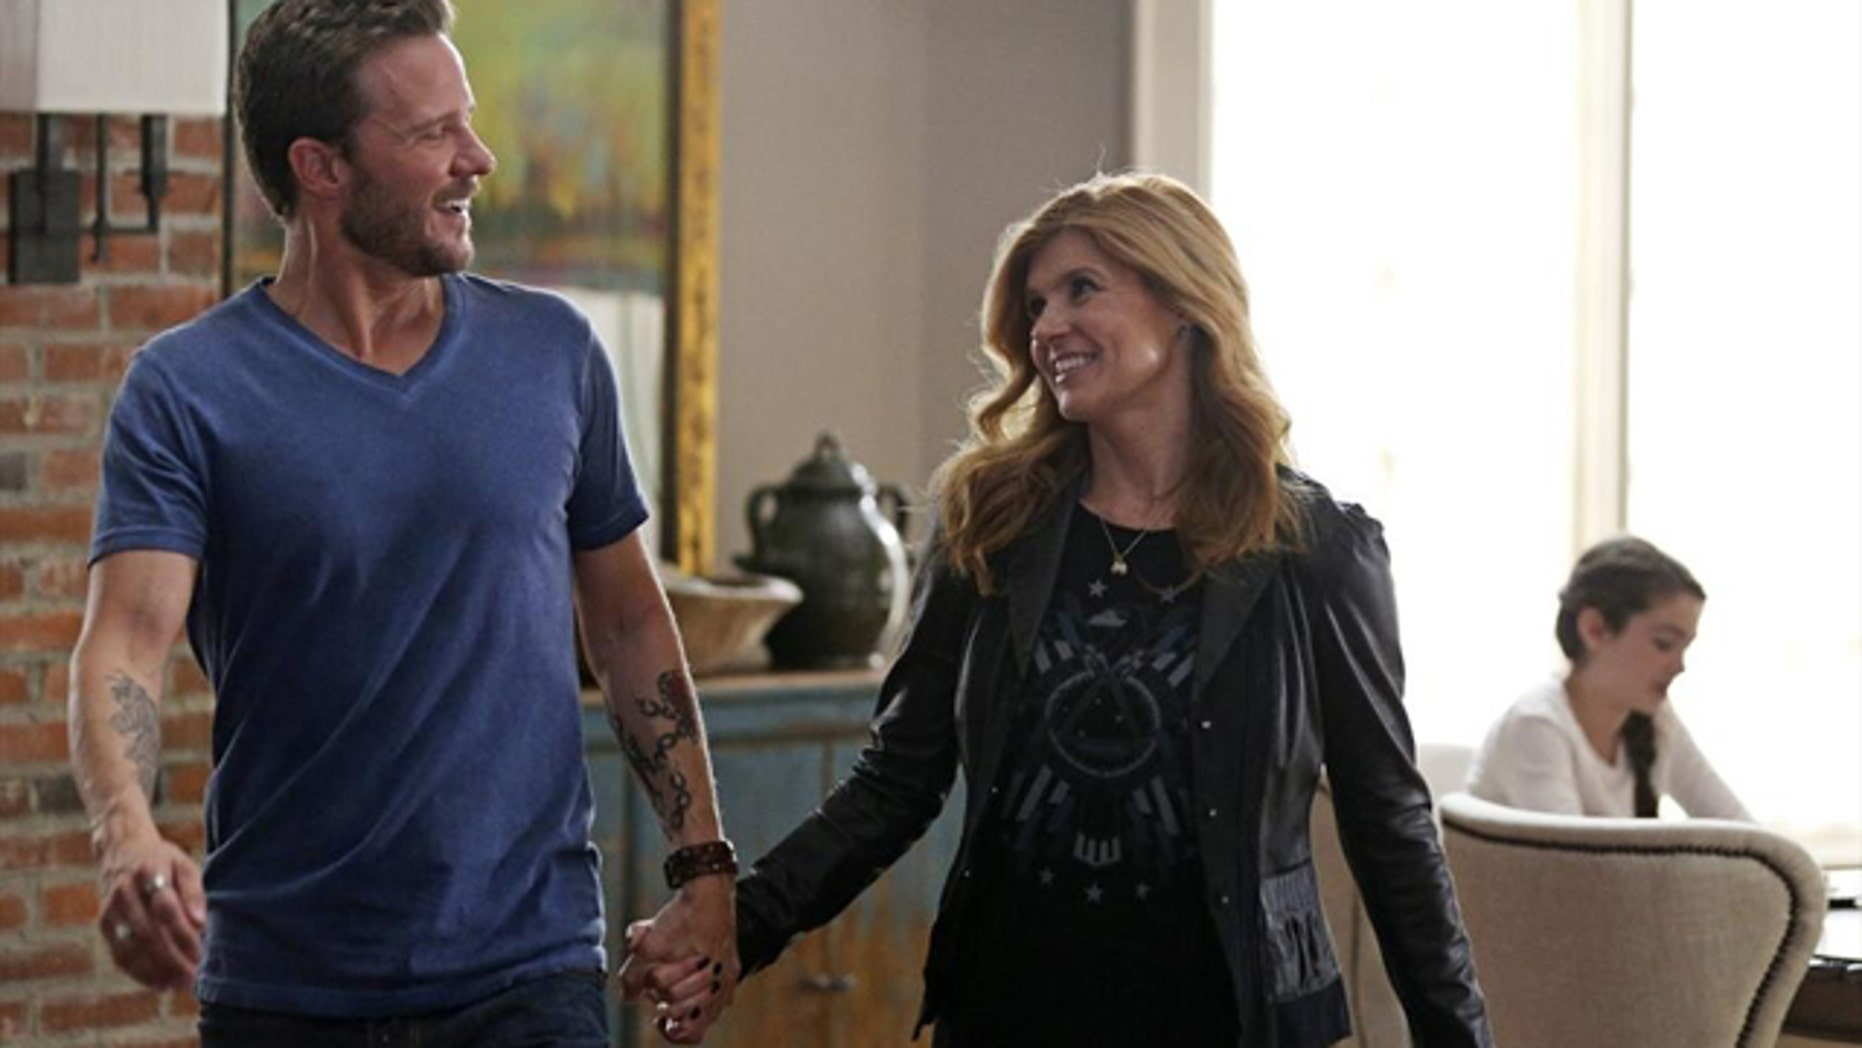 NASHVILLE - The effort by Rayna James (Connie Britton) to raise Highway 65's sales and profile finds her performing her latest single on 'Dancing with the Stars' But when she agrees to be shadowed by a reporter all weekend for the cover of a magazine, just as Luke (Will Chase) hopes to rekindle the romance, she realizes she may have pushed her public access too far. (ABC/Mark Levine)